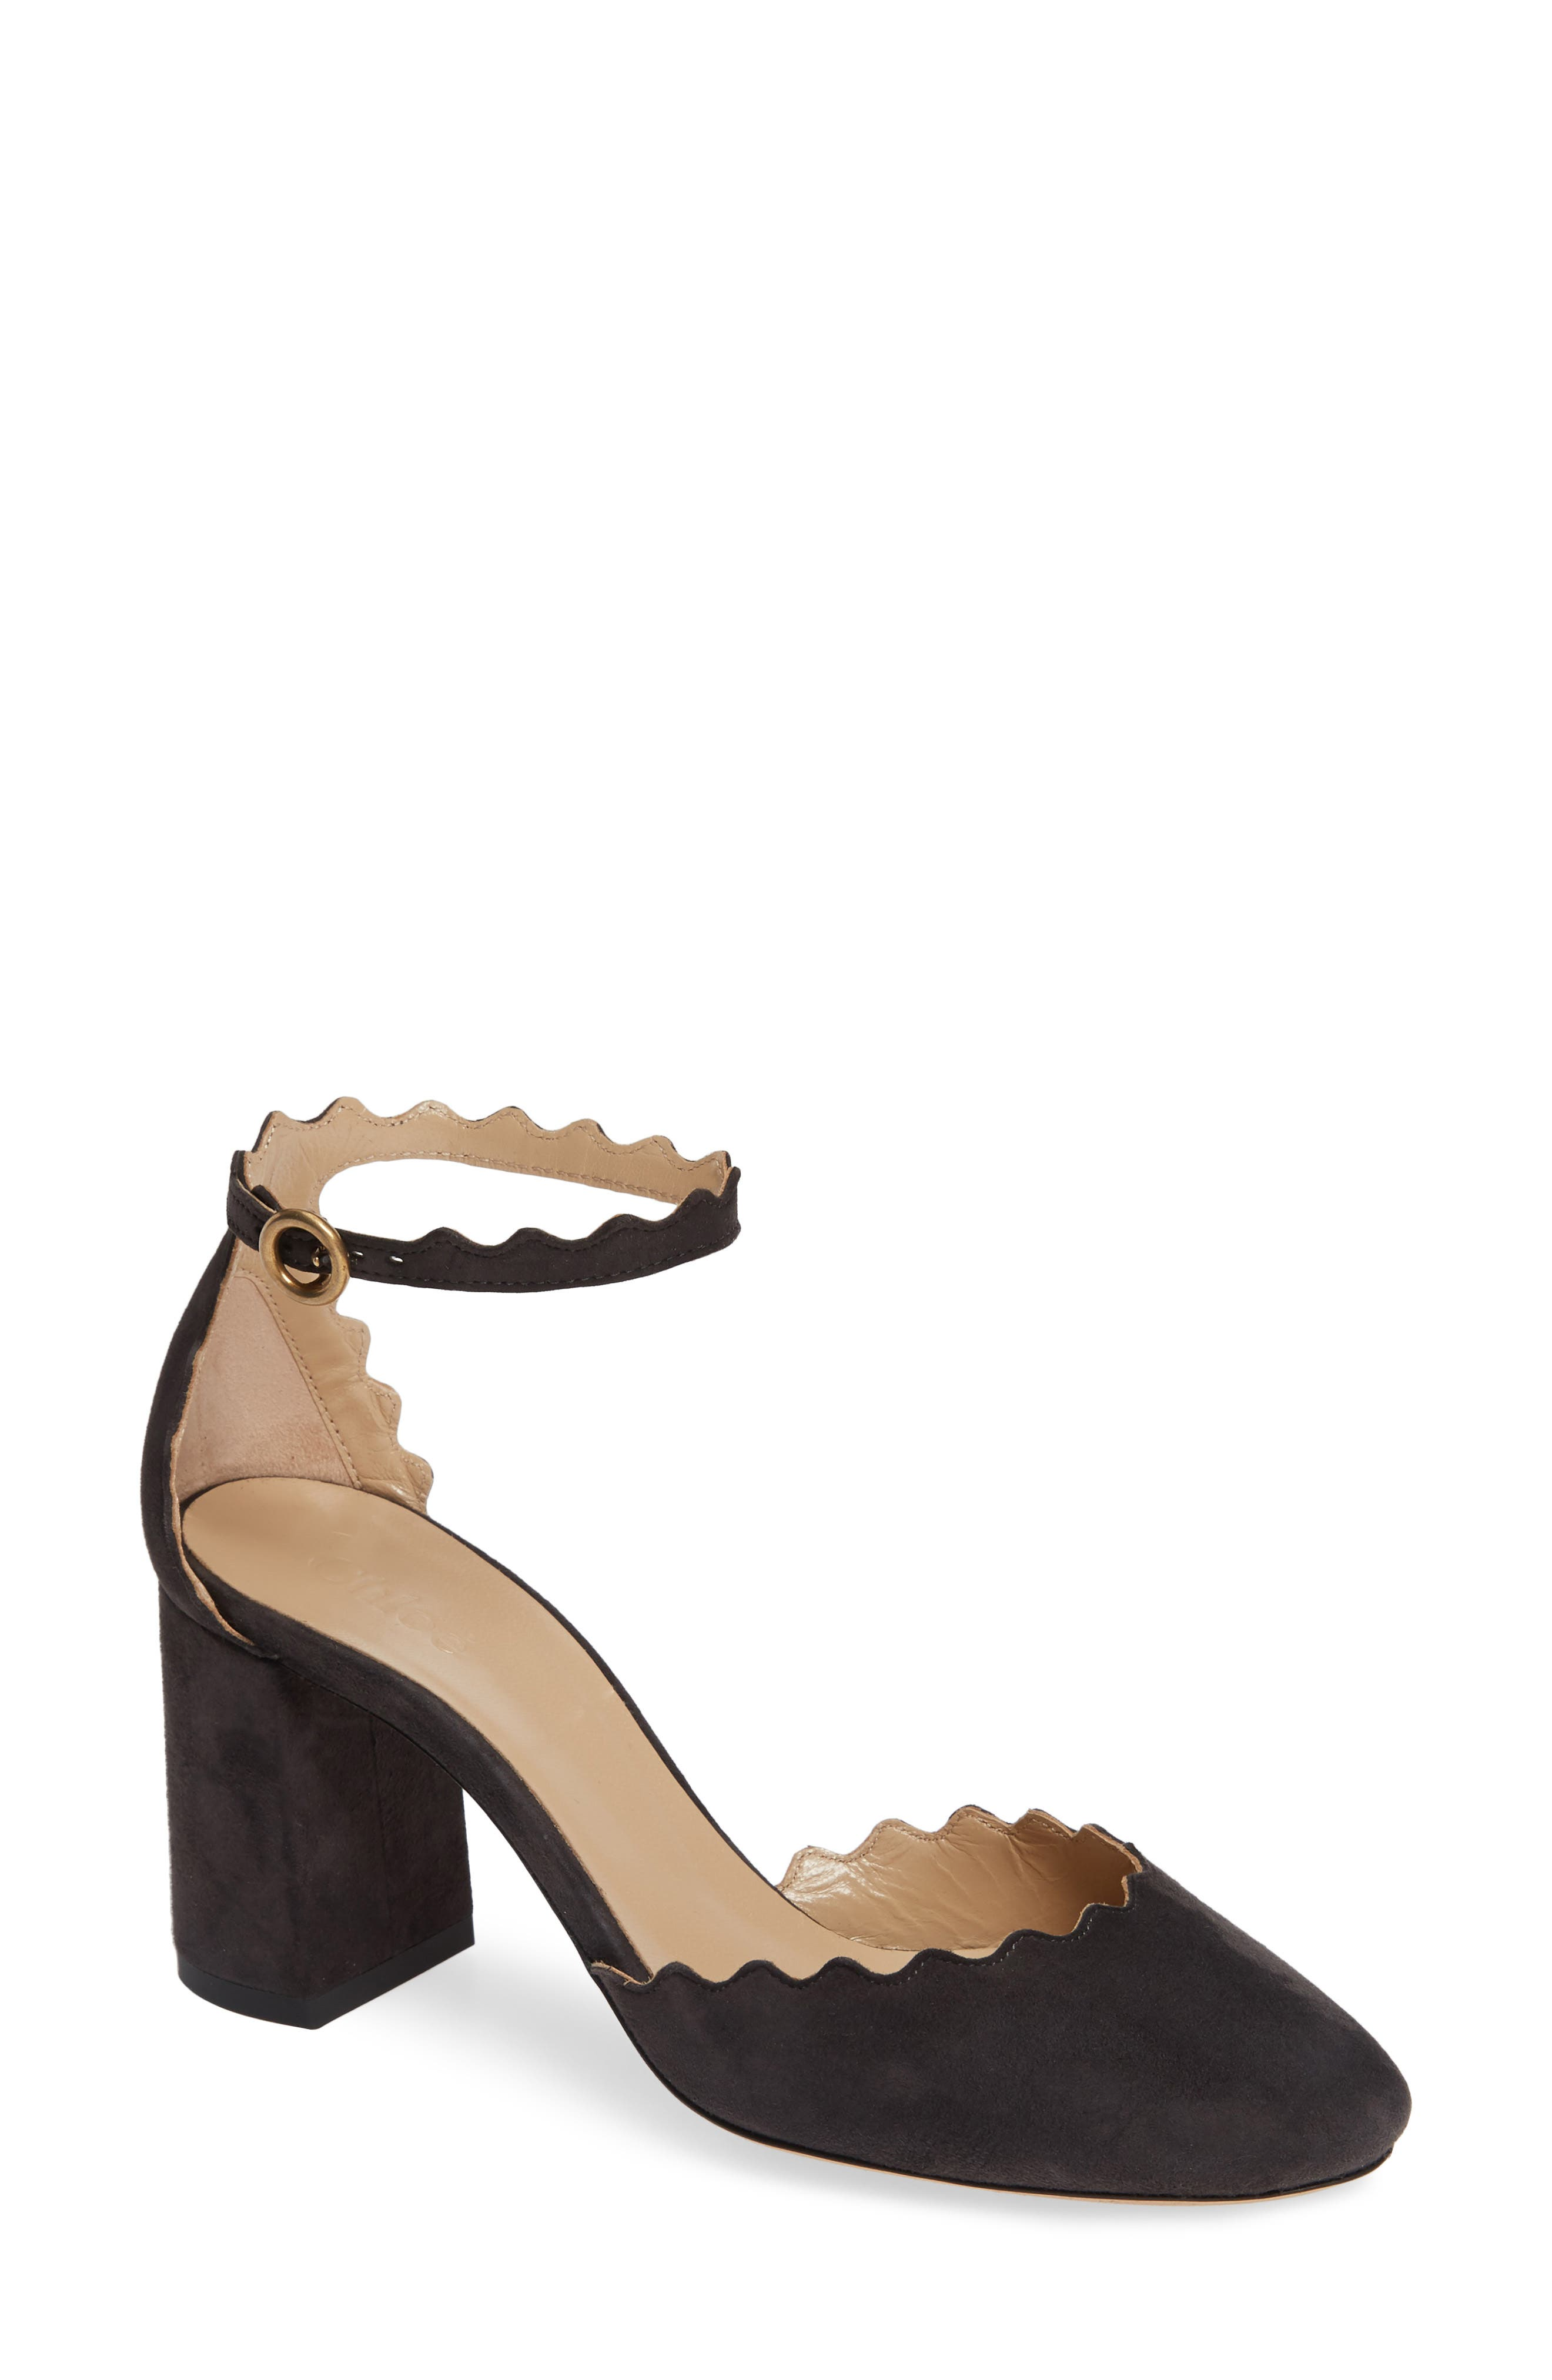 Scalloped Ankle Strap d'Orsay Pump,                             Main thumbnail 1, color,                             010